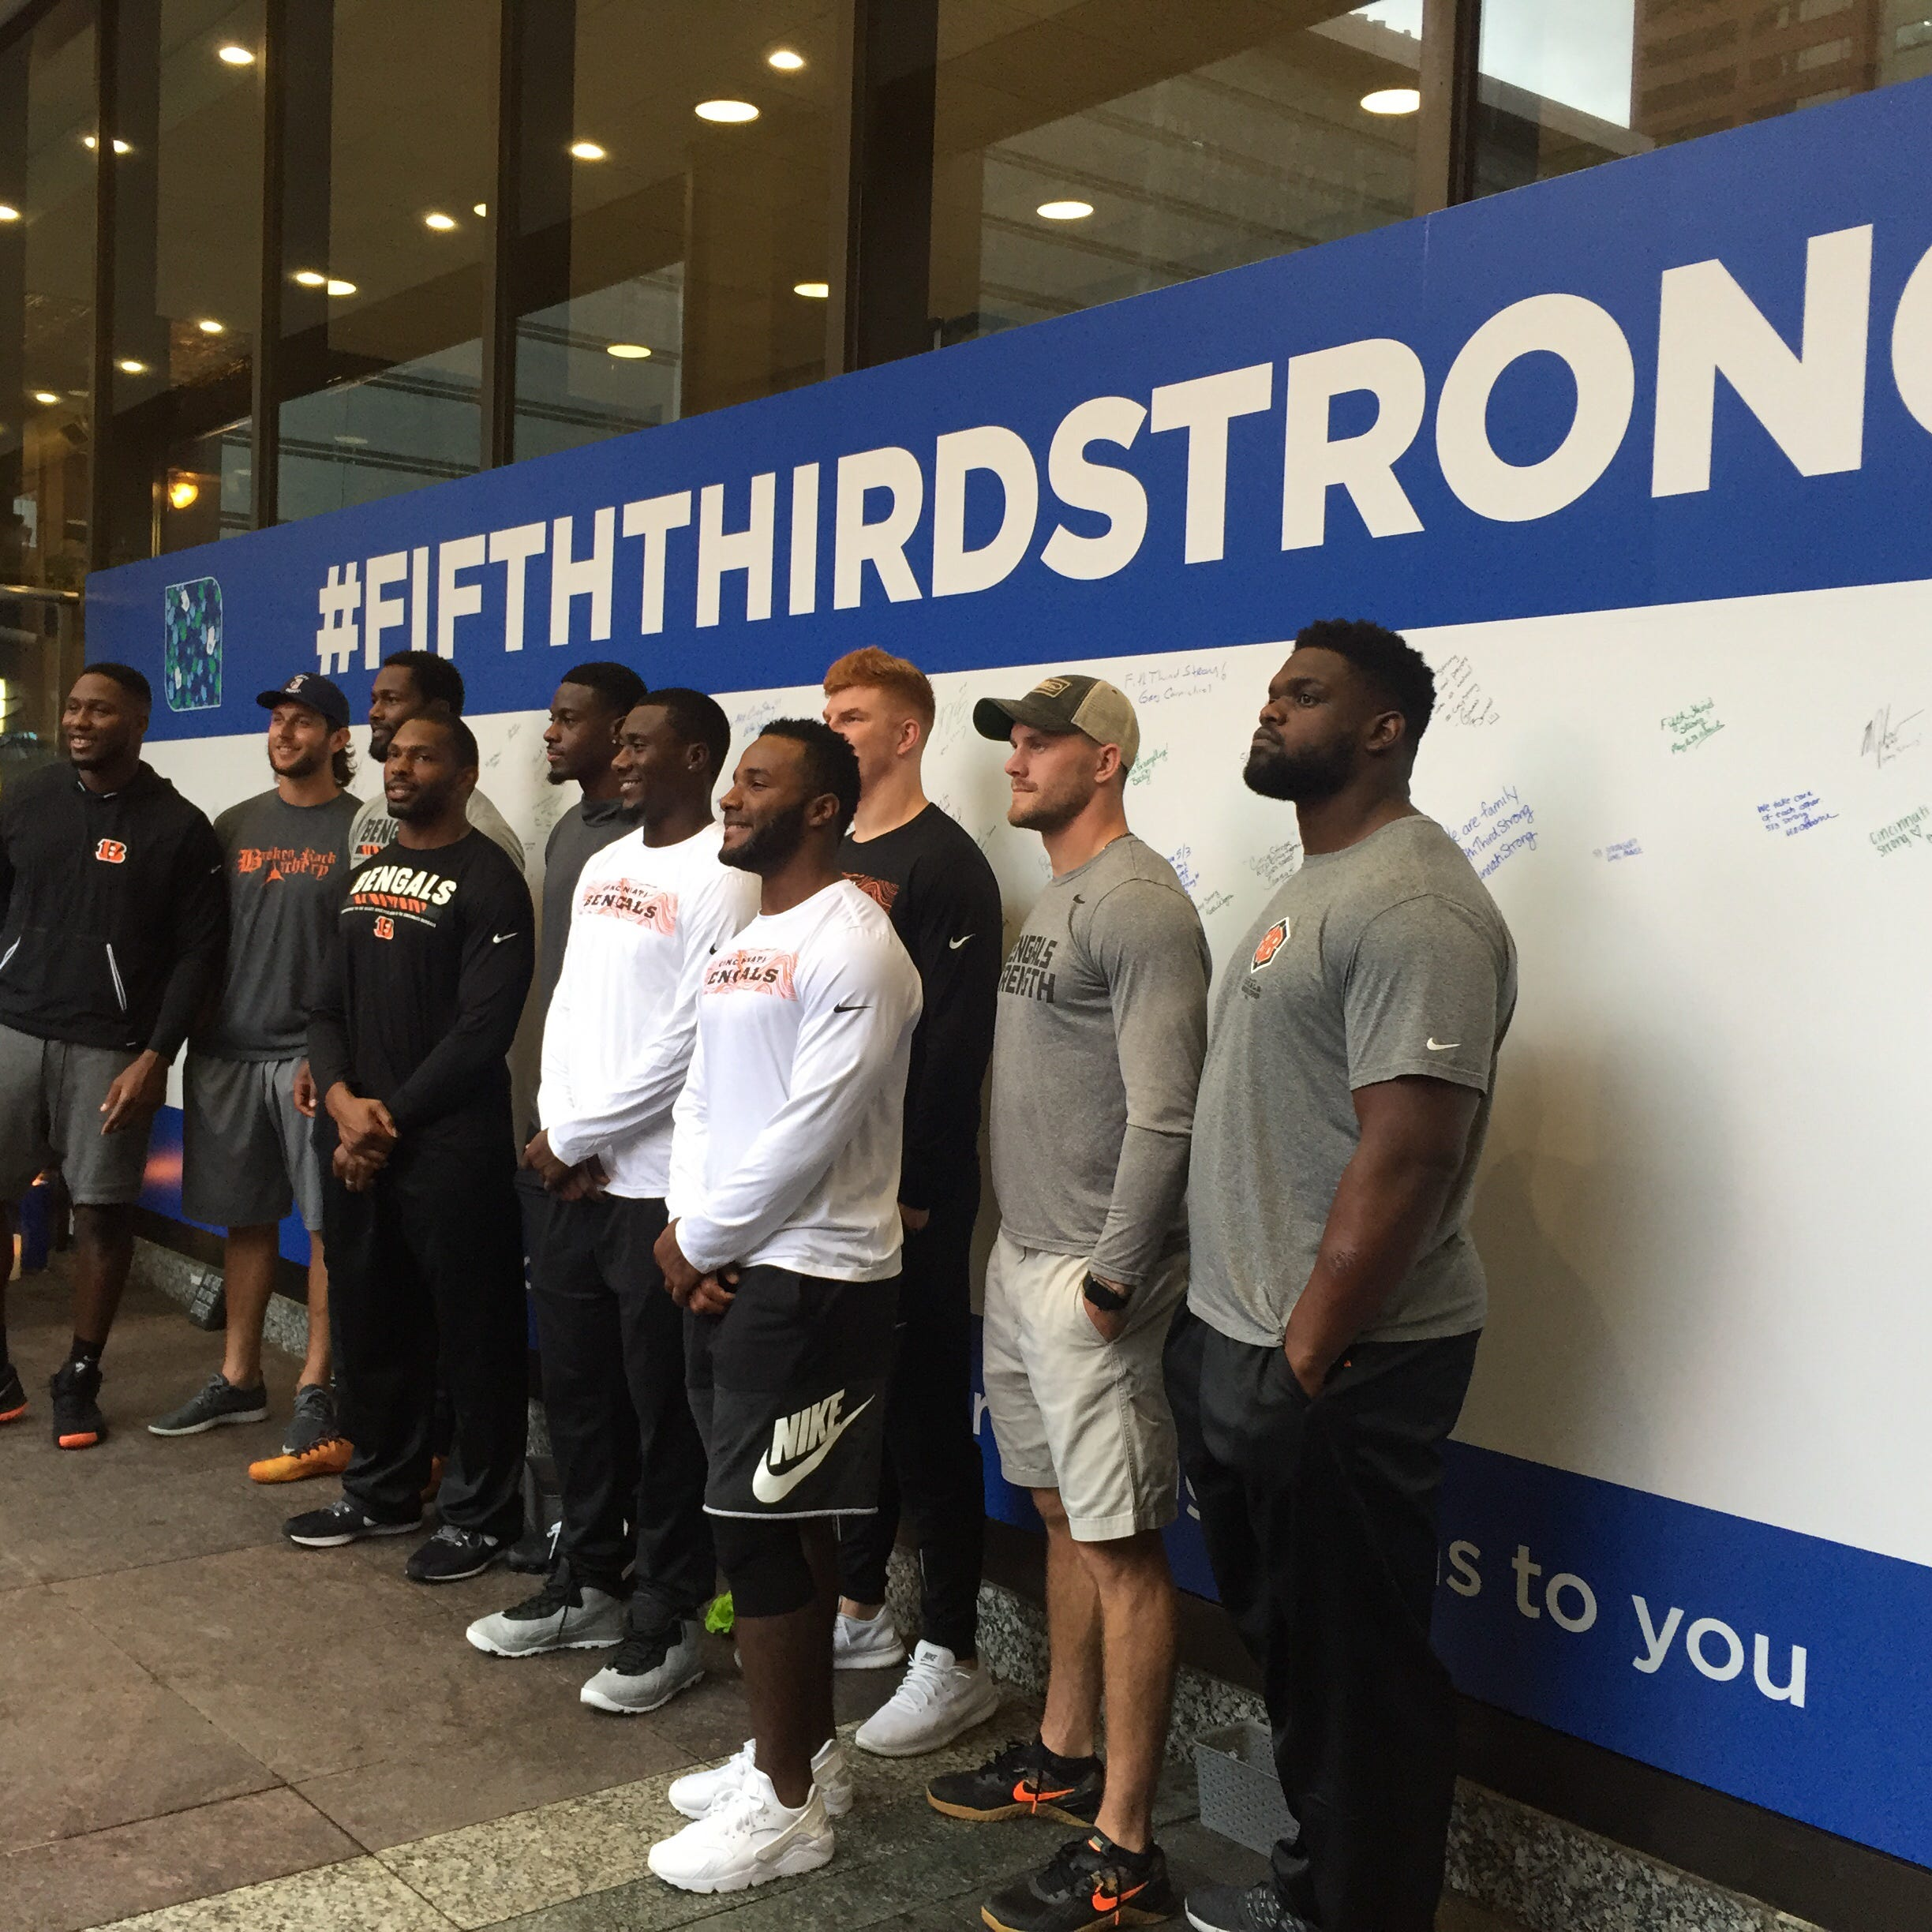 BX: How the Cincinnati Bengals got involved in Fifth Third re-opening.